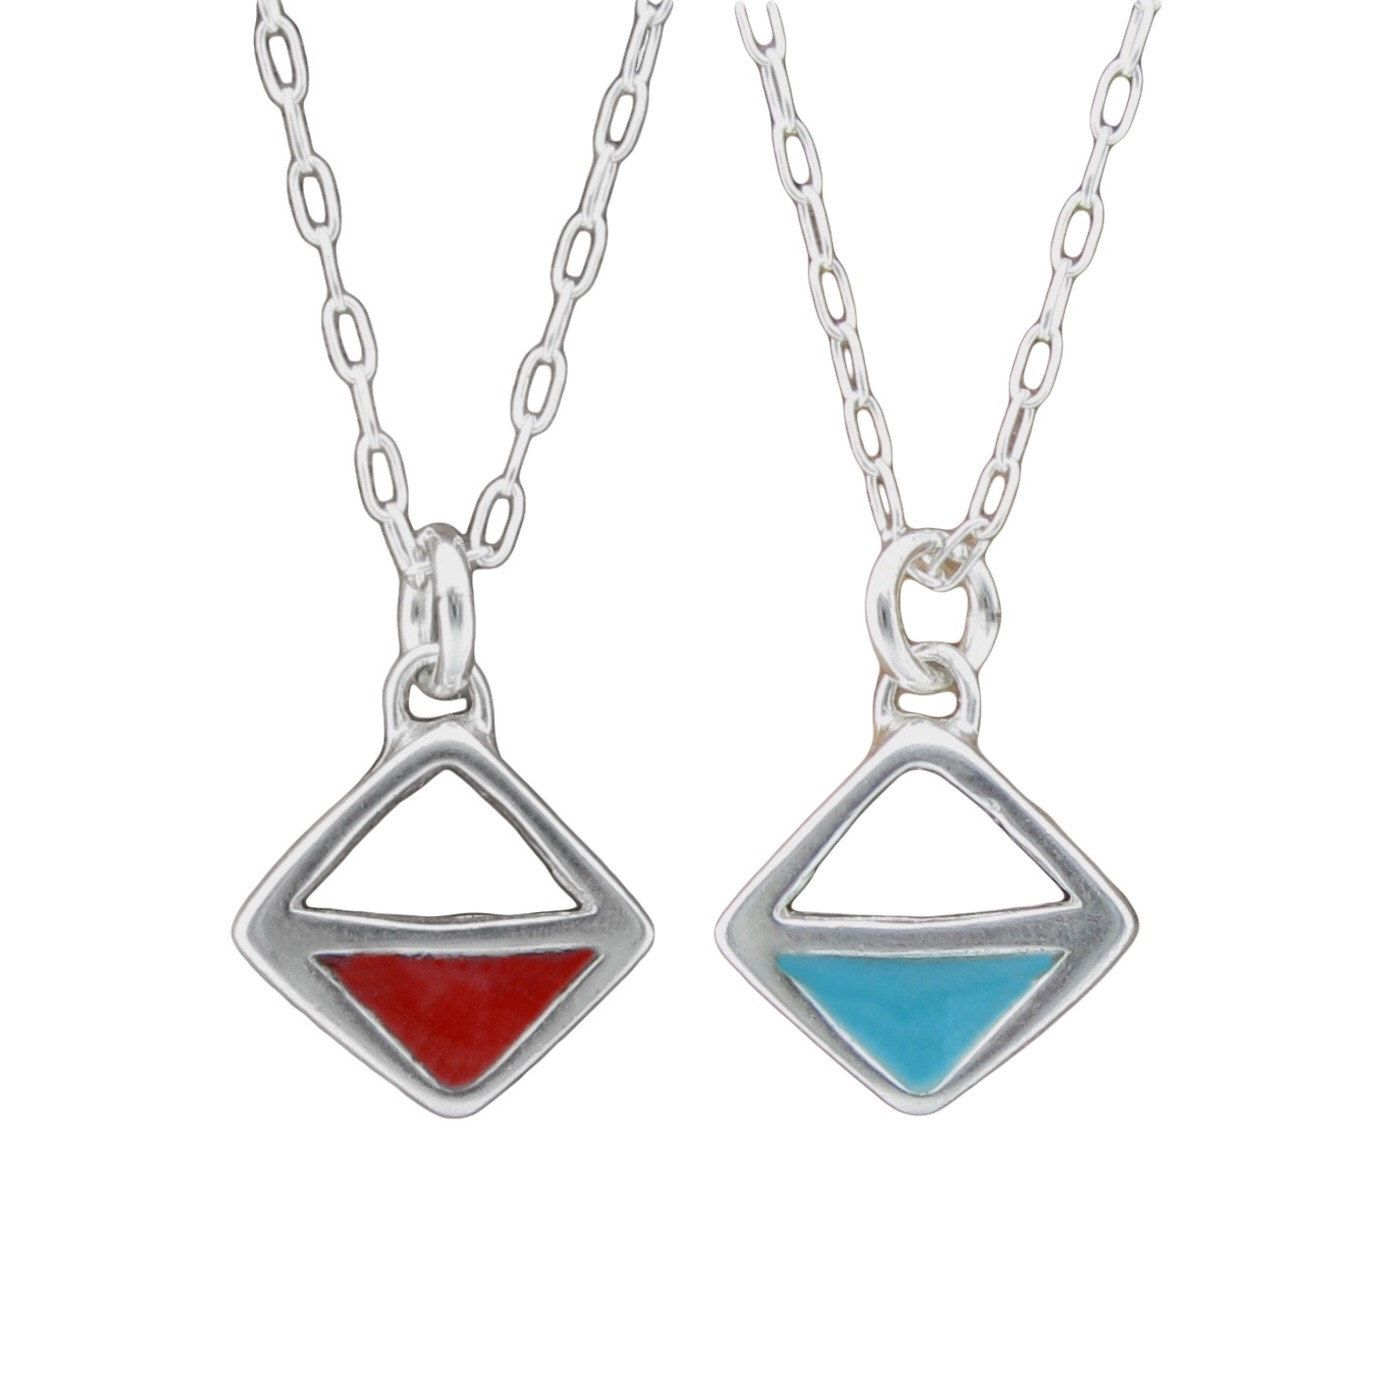 Red and Turquoise Diamond Necklace - Reversible Silver and Enamel Pendant by marmarModern on Etsy https://www.etsy.com/listing/270749521/red-and-turquoise-diamond-necklace